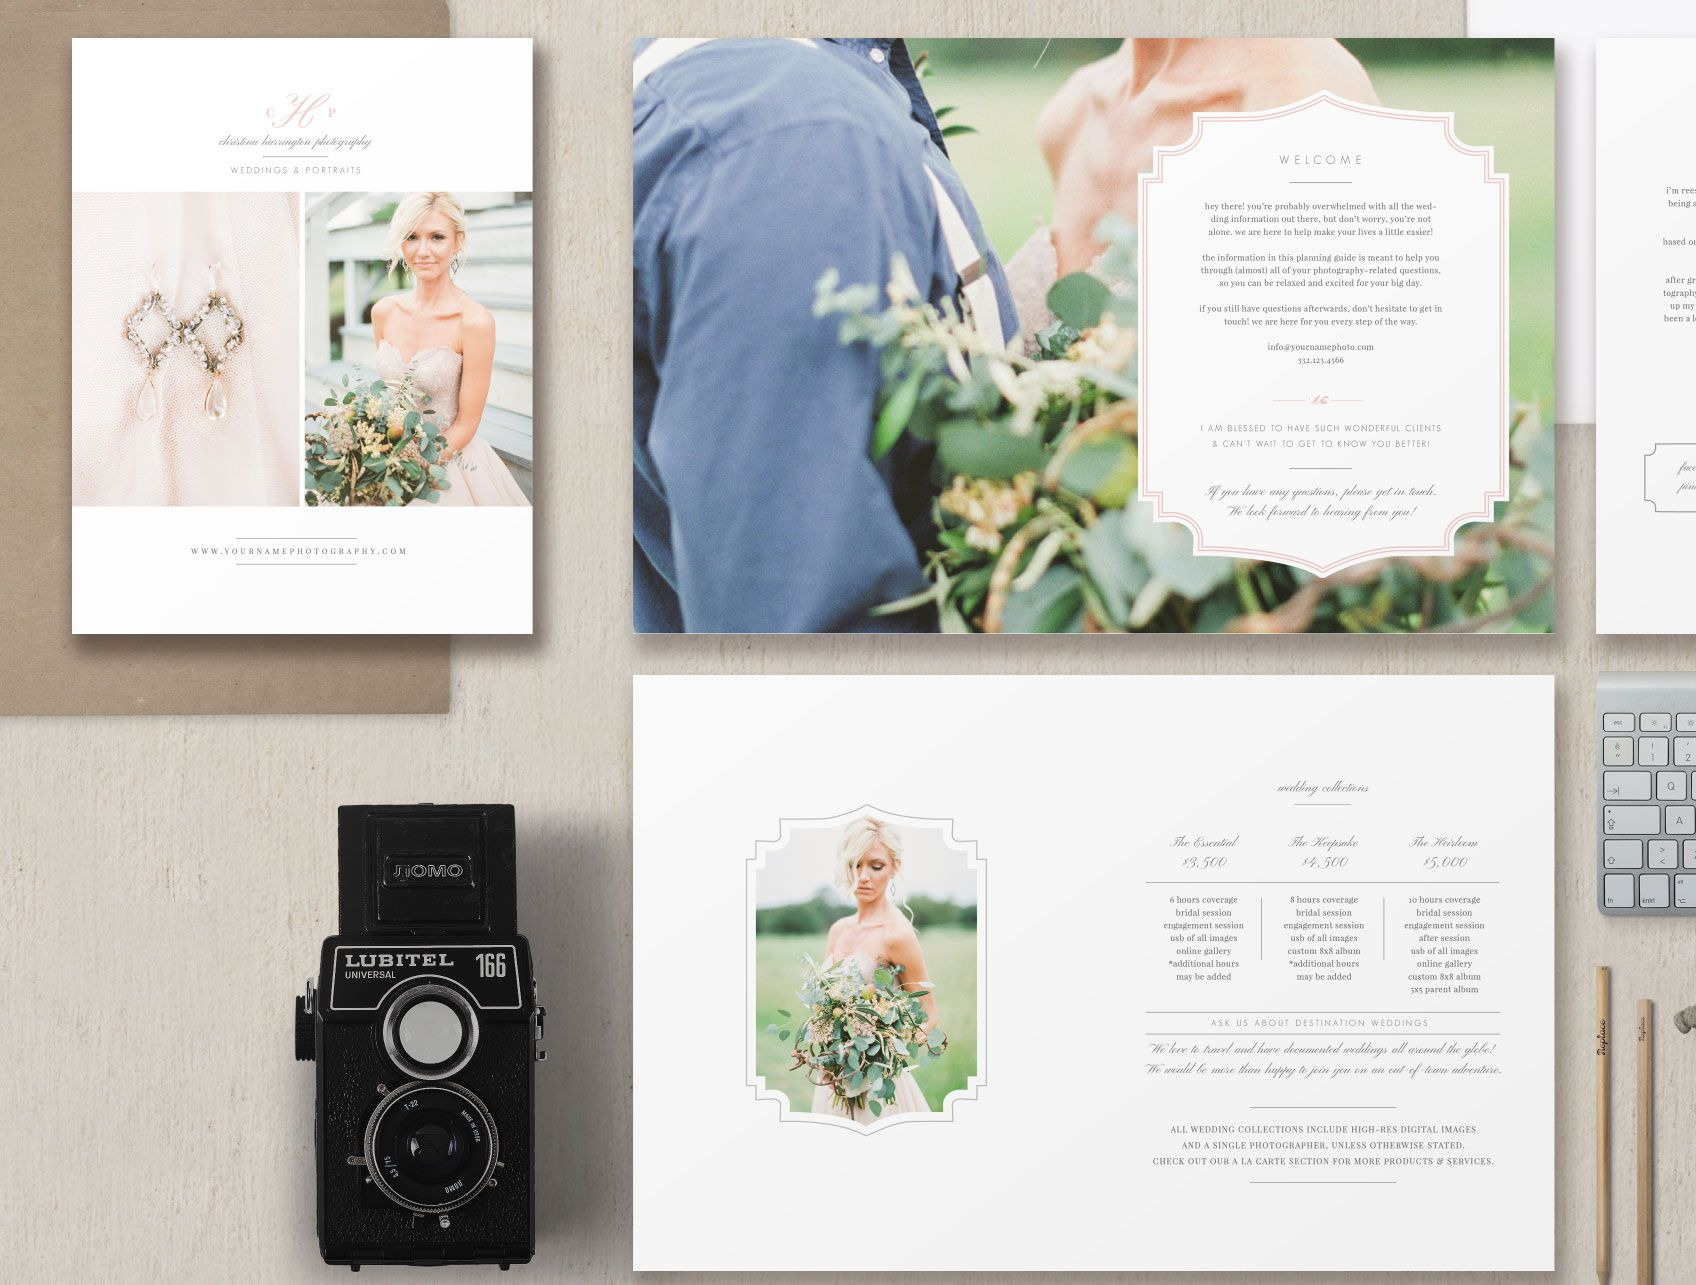 New Client Studio Welcome Packet Wedding Magazine Template Bridal Guide For Professional Photographers